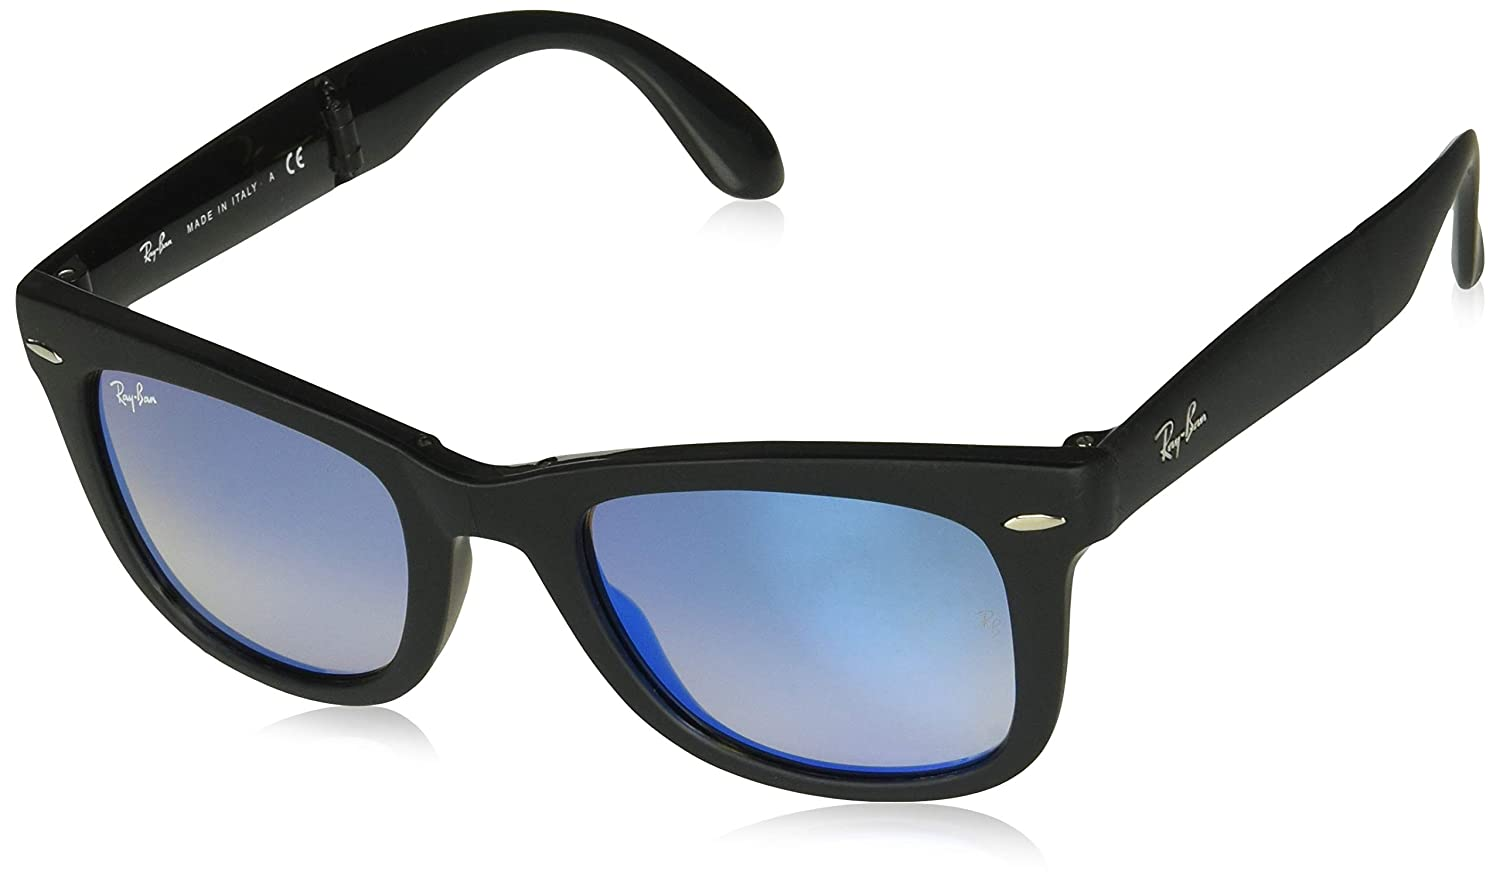 8722276ea1 Amazon.com  Ray-Ban Men s Folding Wayfarer Sunglasses